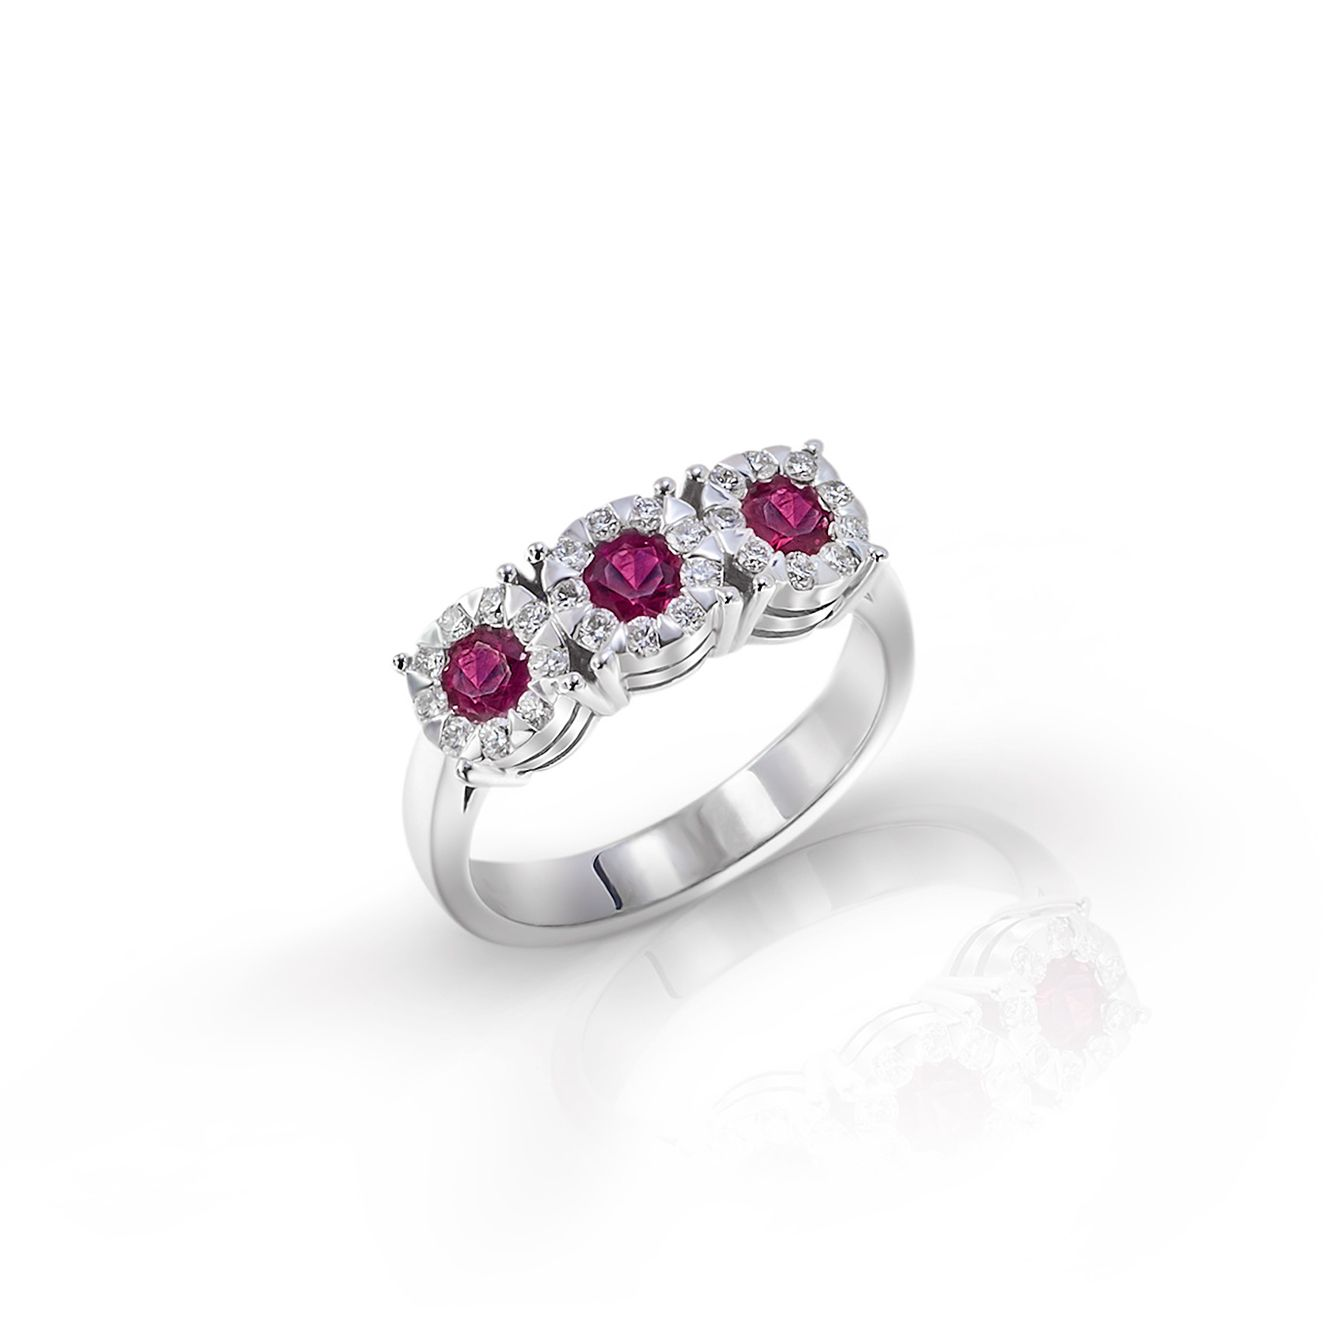 18 carat white gold trilogy style ring with 1 tcw in diamonds and rubies #diamond #diamondring #engagement #ring #luxury #Italian #fiorly @Fiorly  #ruby